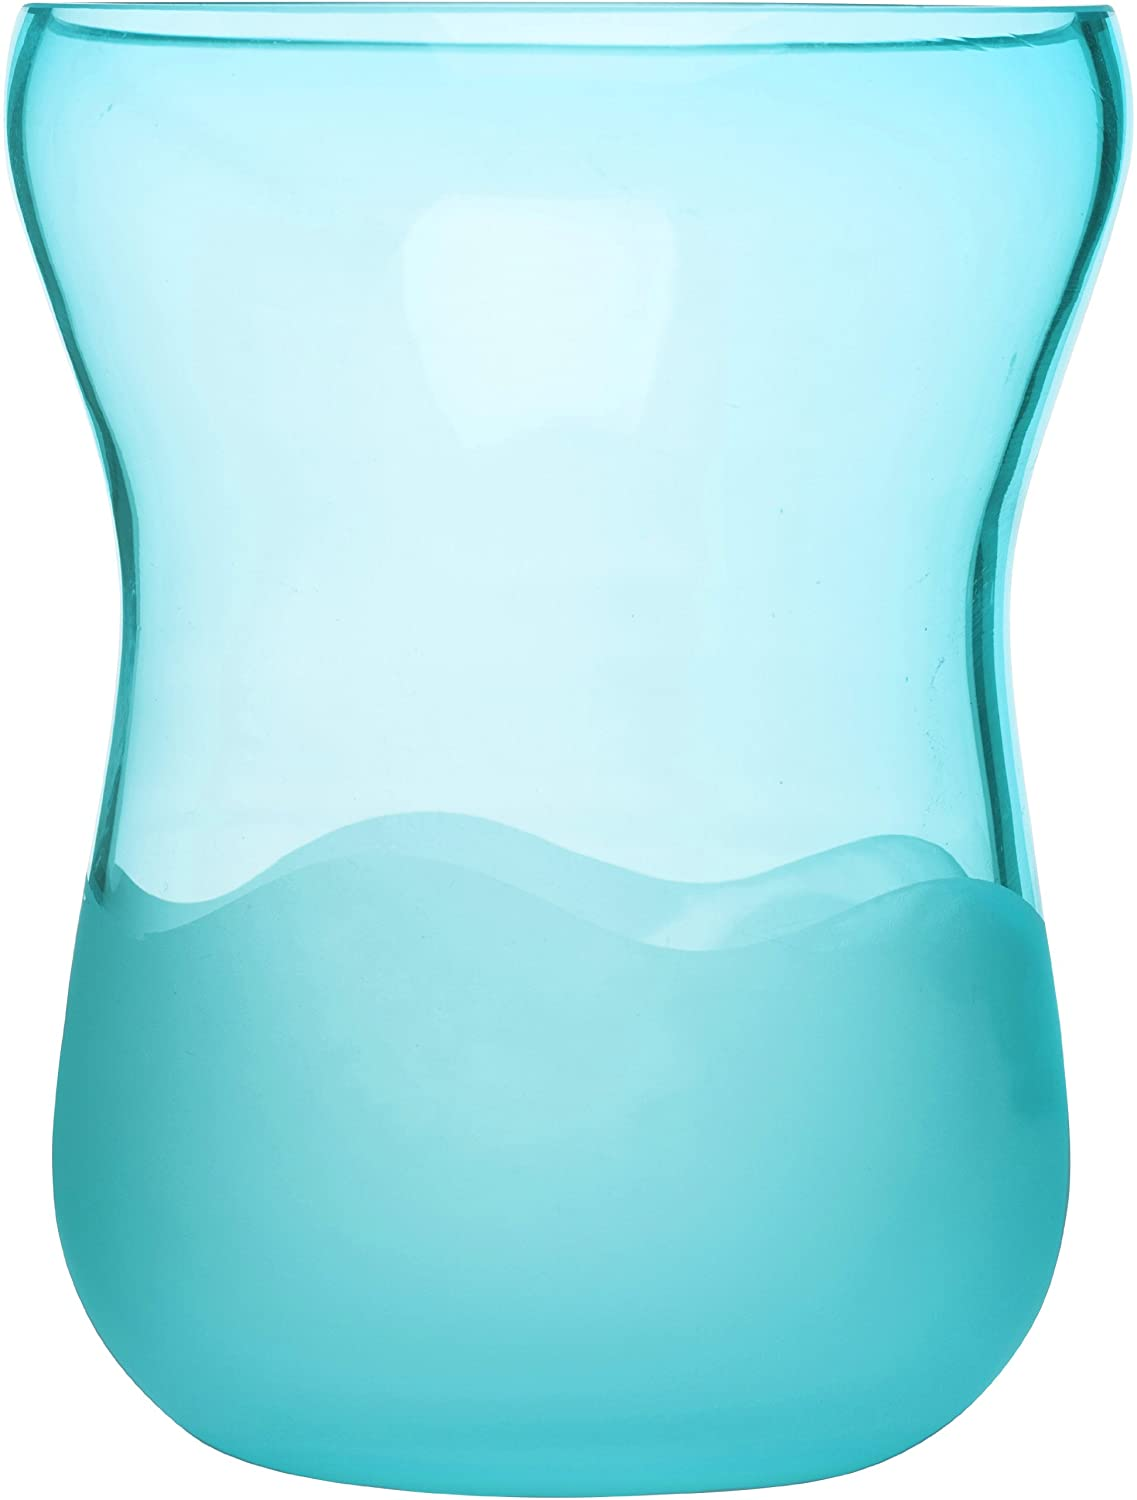 SEAglasbruk Aqua Wave Vase Light Green